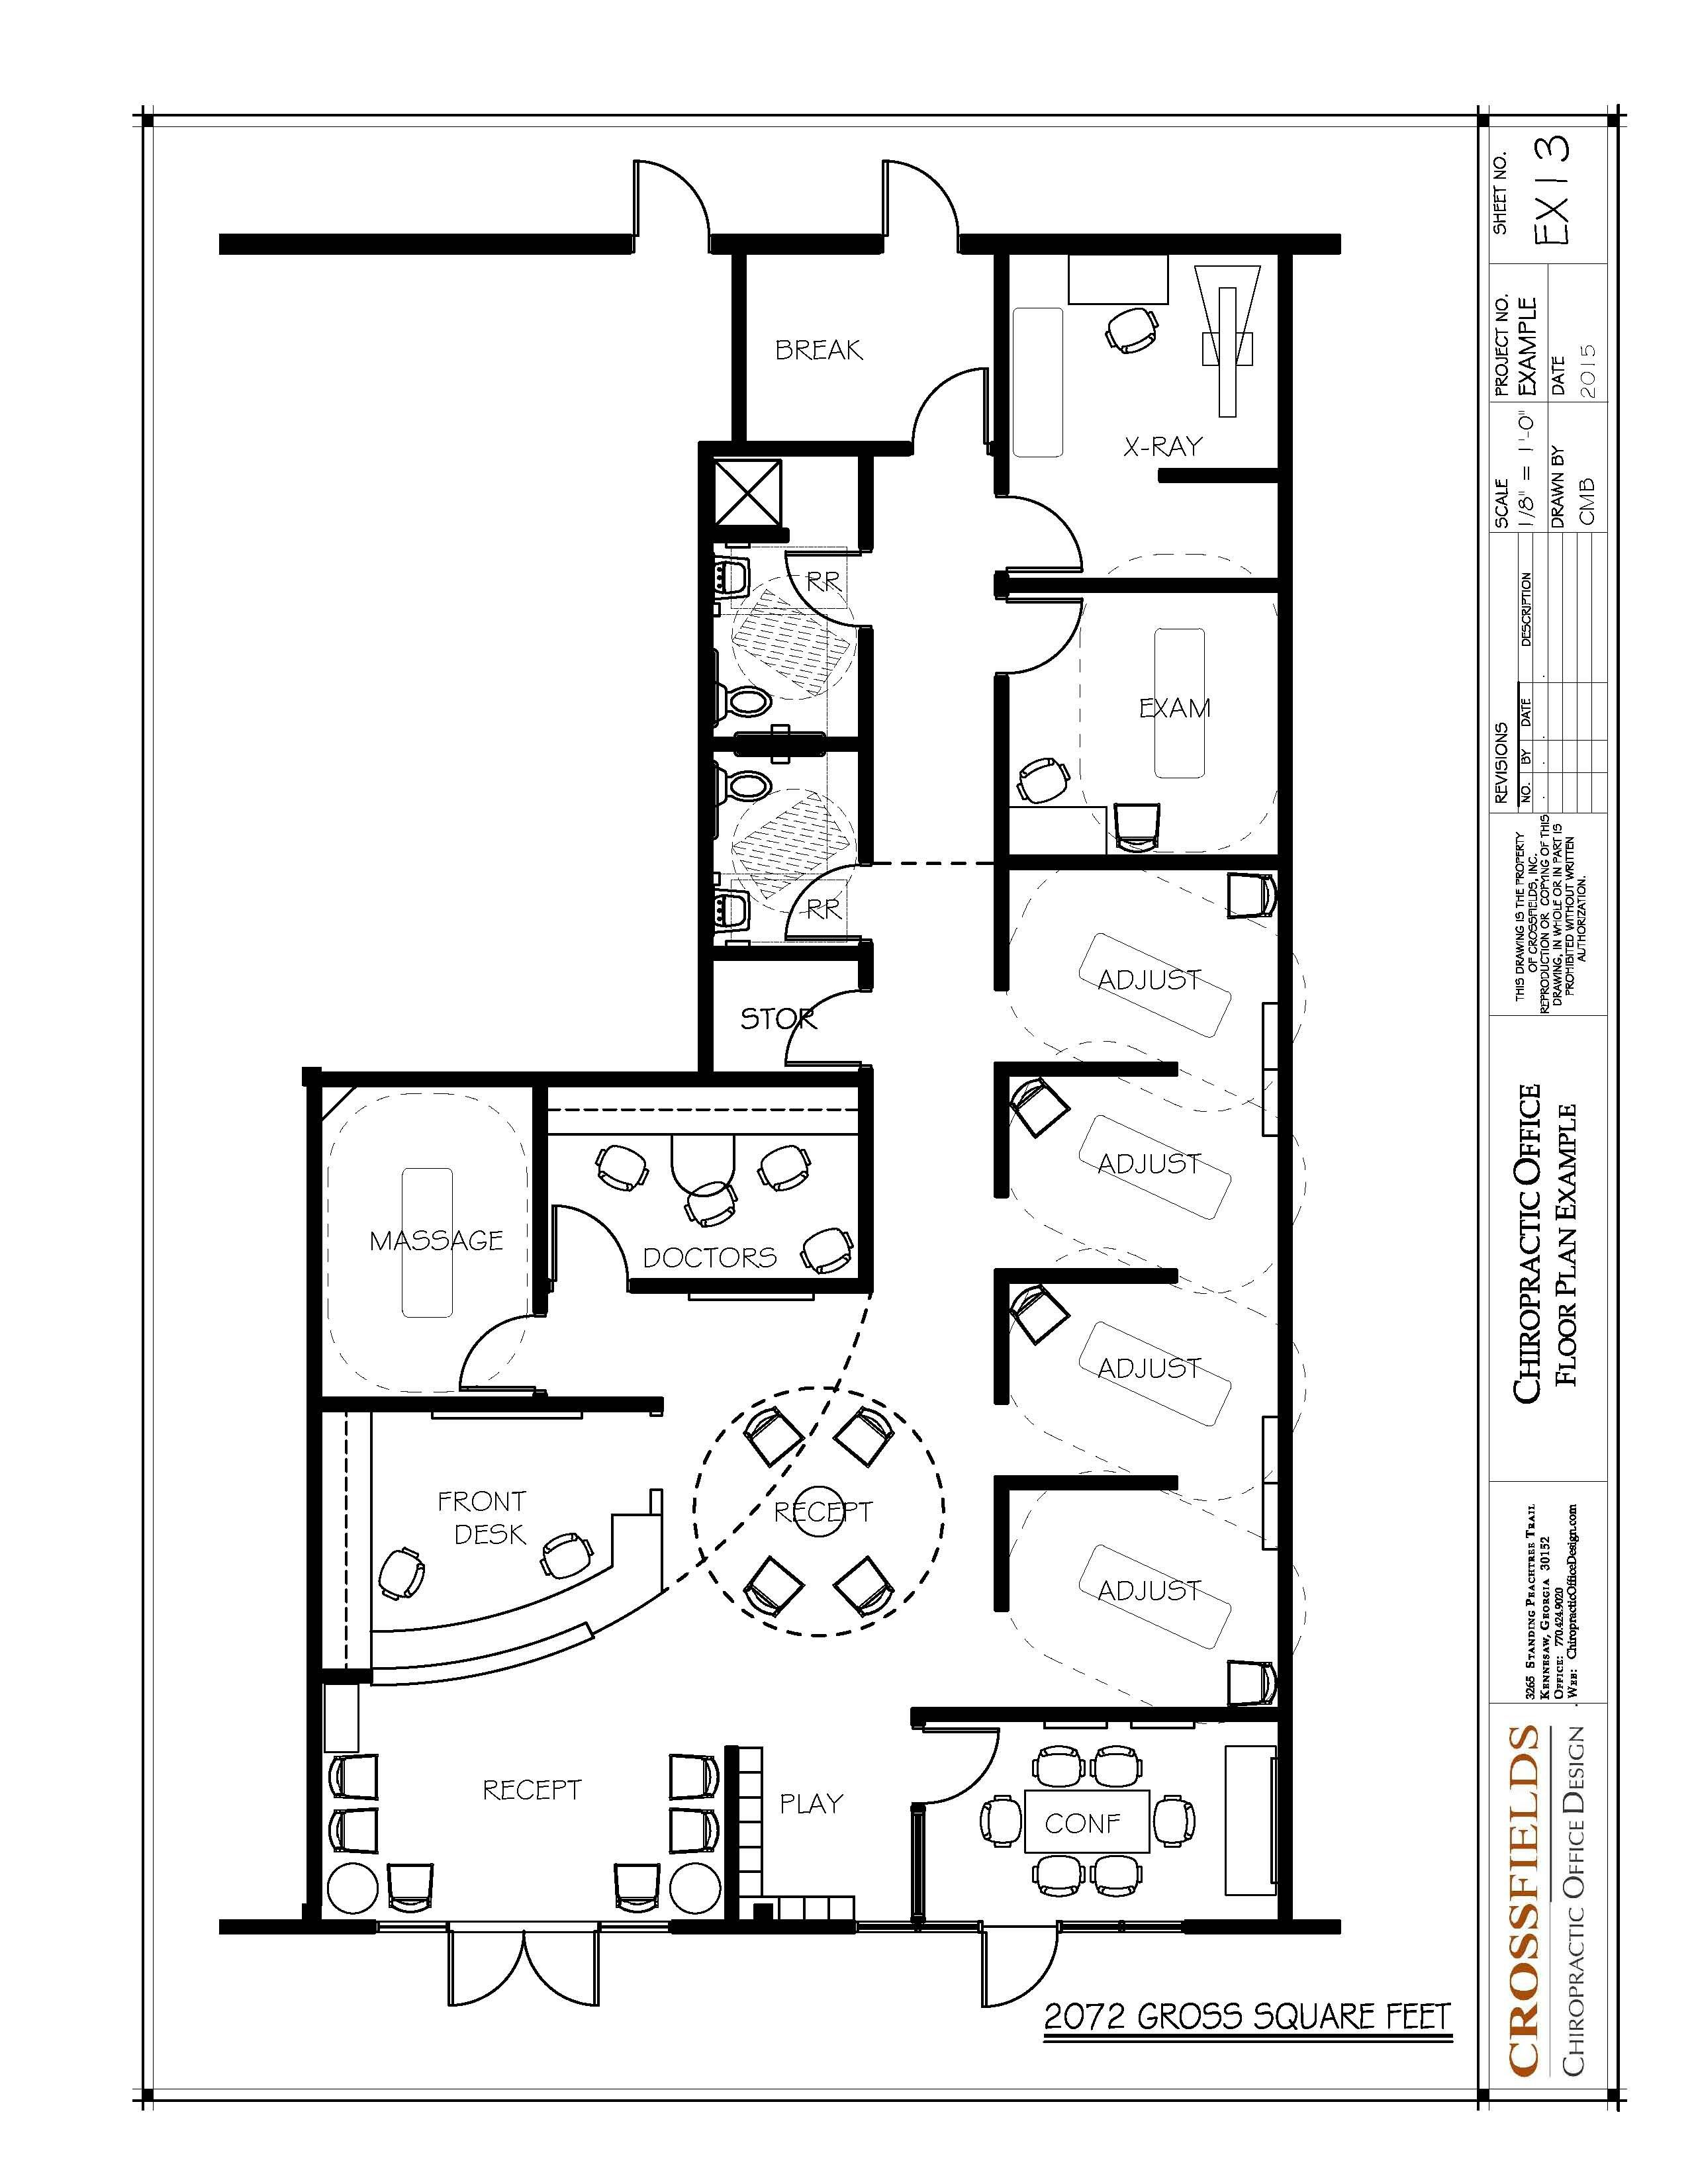 office design floor plans. chiropractic office floor plan multi doctor semiopen adjusting 2072 gross sq design plans